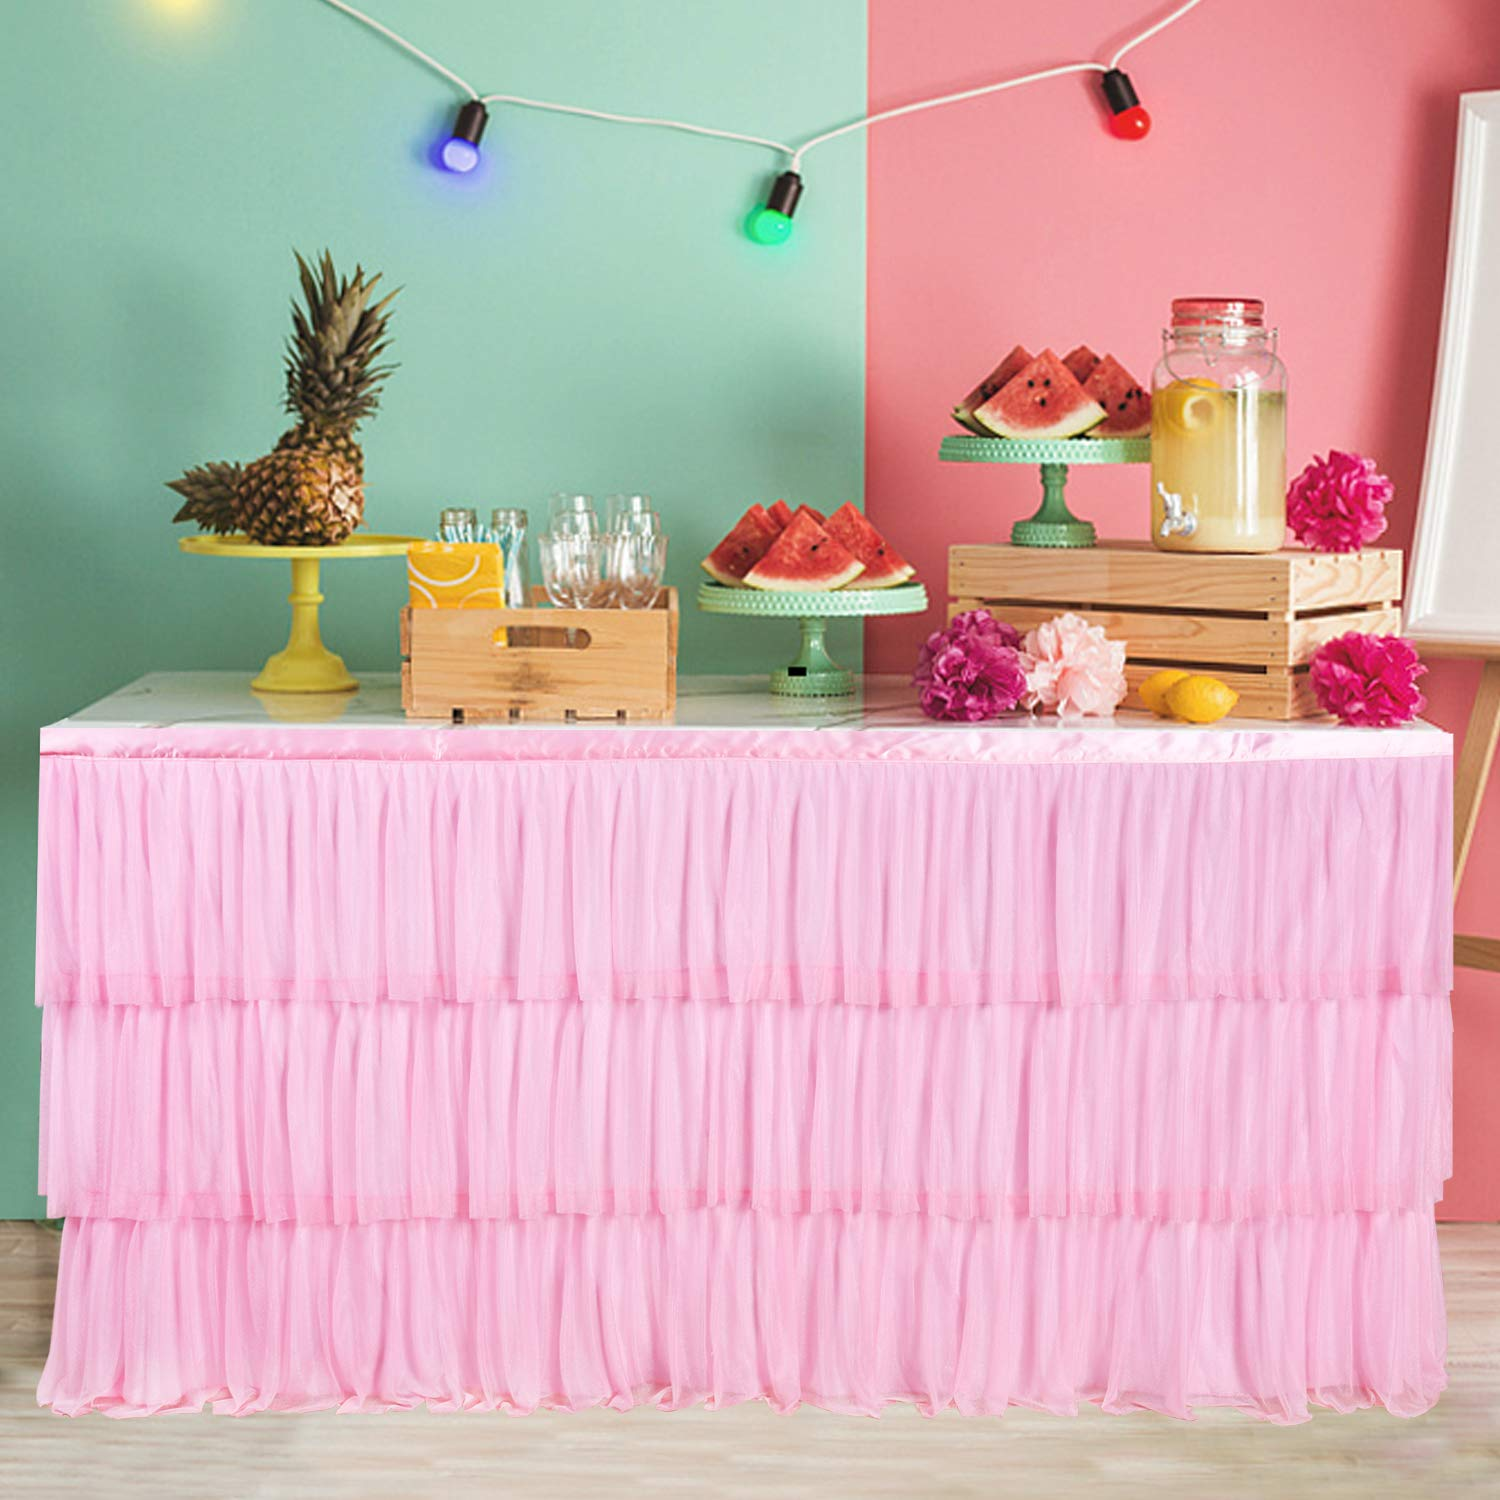 9ft Pink Tulle Tutu Table Skirt with 3 Tier Dust Ruffle Skirting for Round or Rectangular Table for Party, Meeting, Birthday, Wedding Decoration and Home Decor(L108Inch×H30Inch)